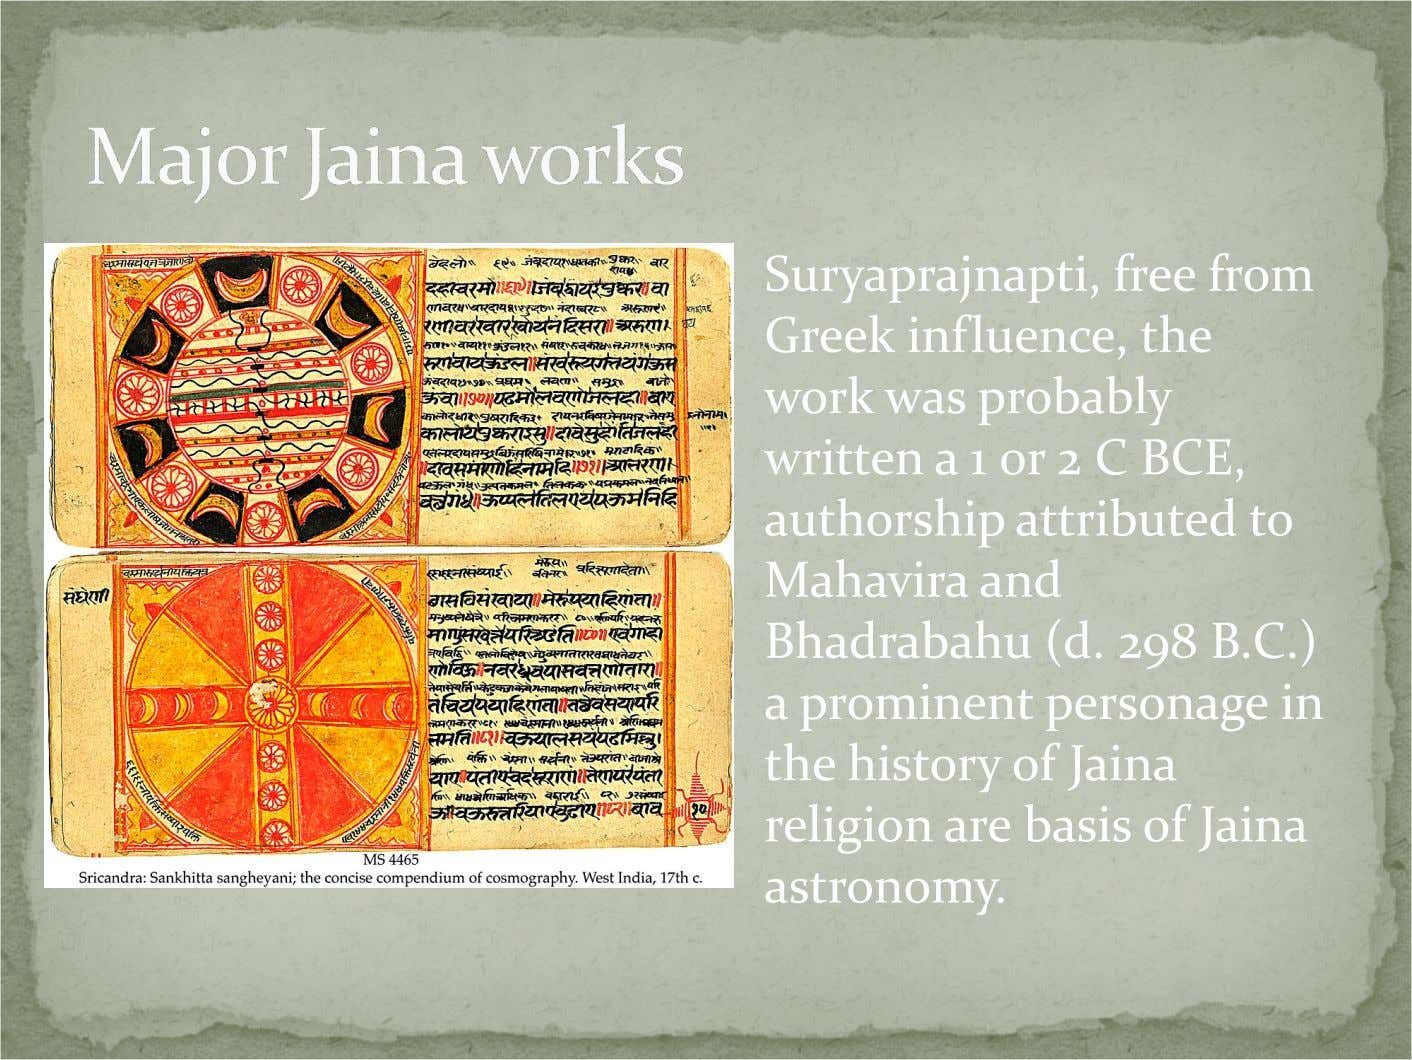 Suryaprajnapti, free from Greek influence, the work was probably written a 1 0r 2 C